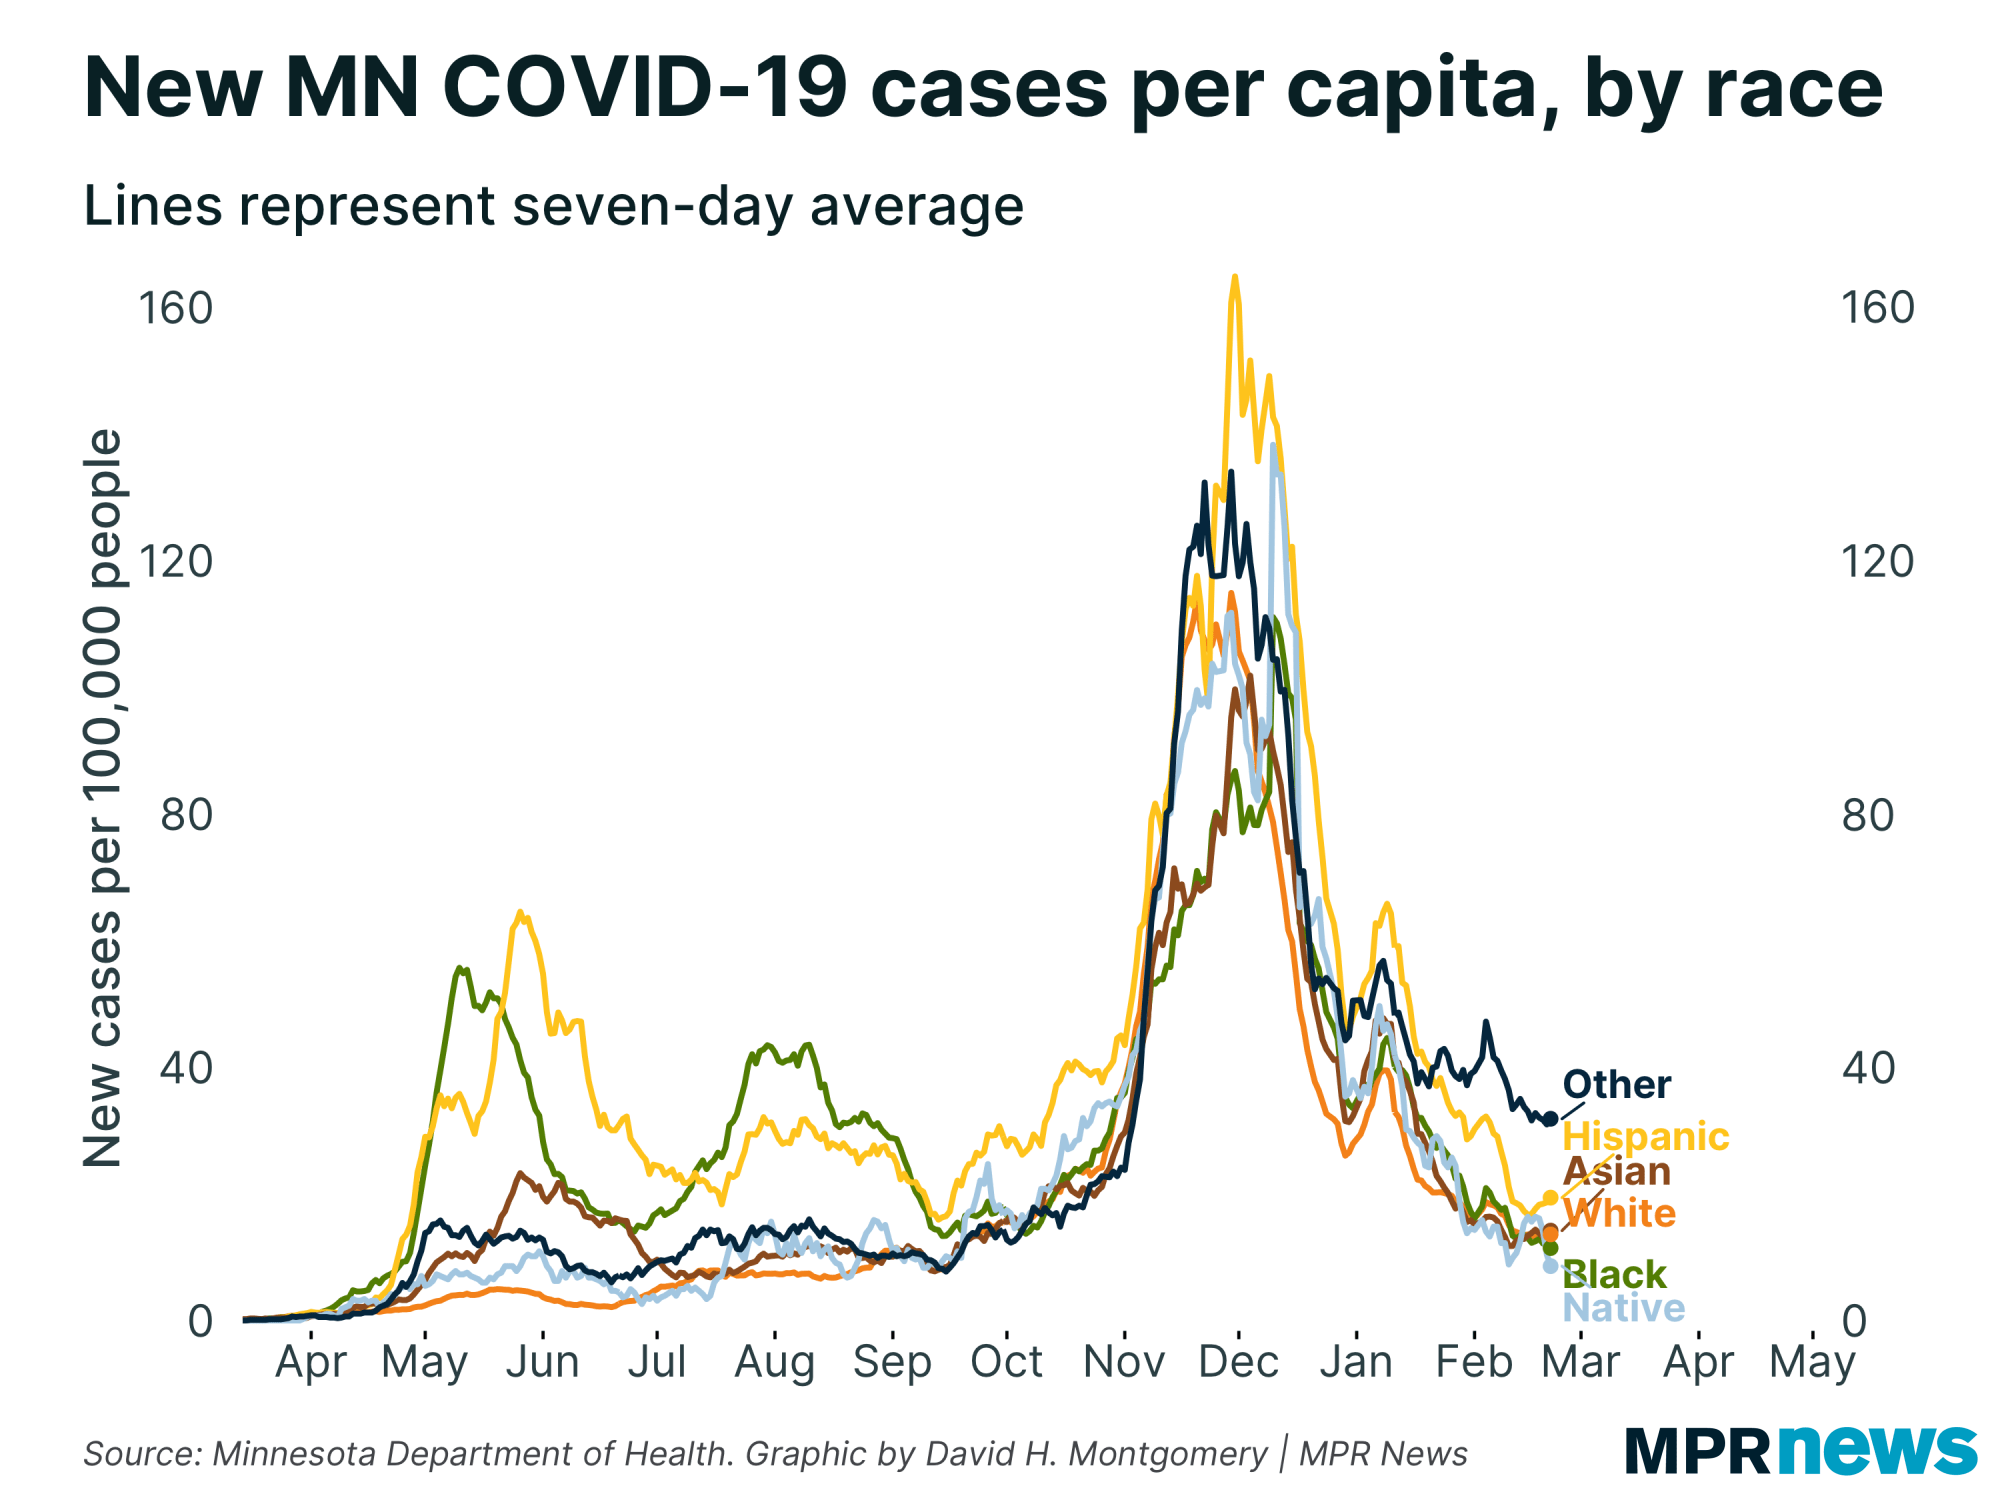 New COVID-19 cases per capita by race